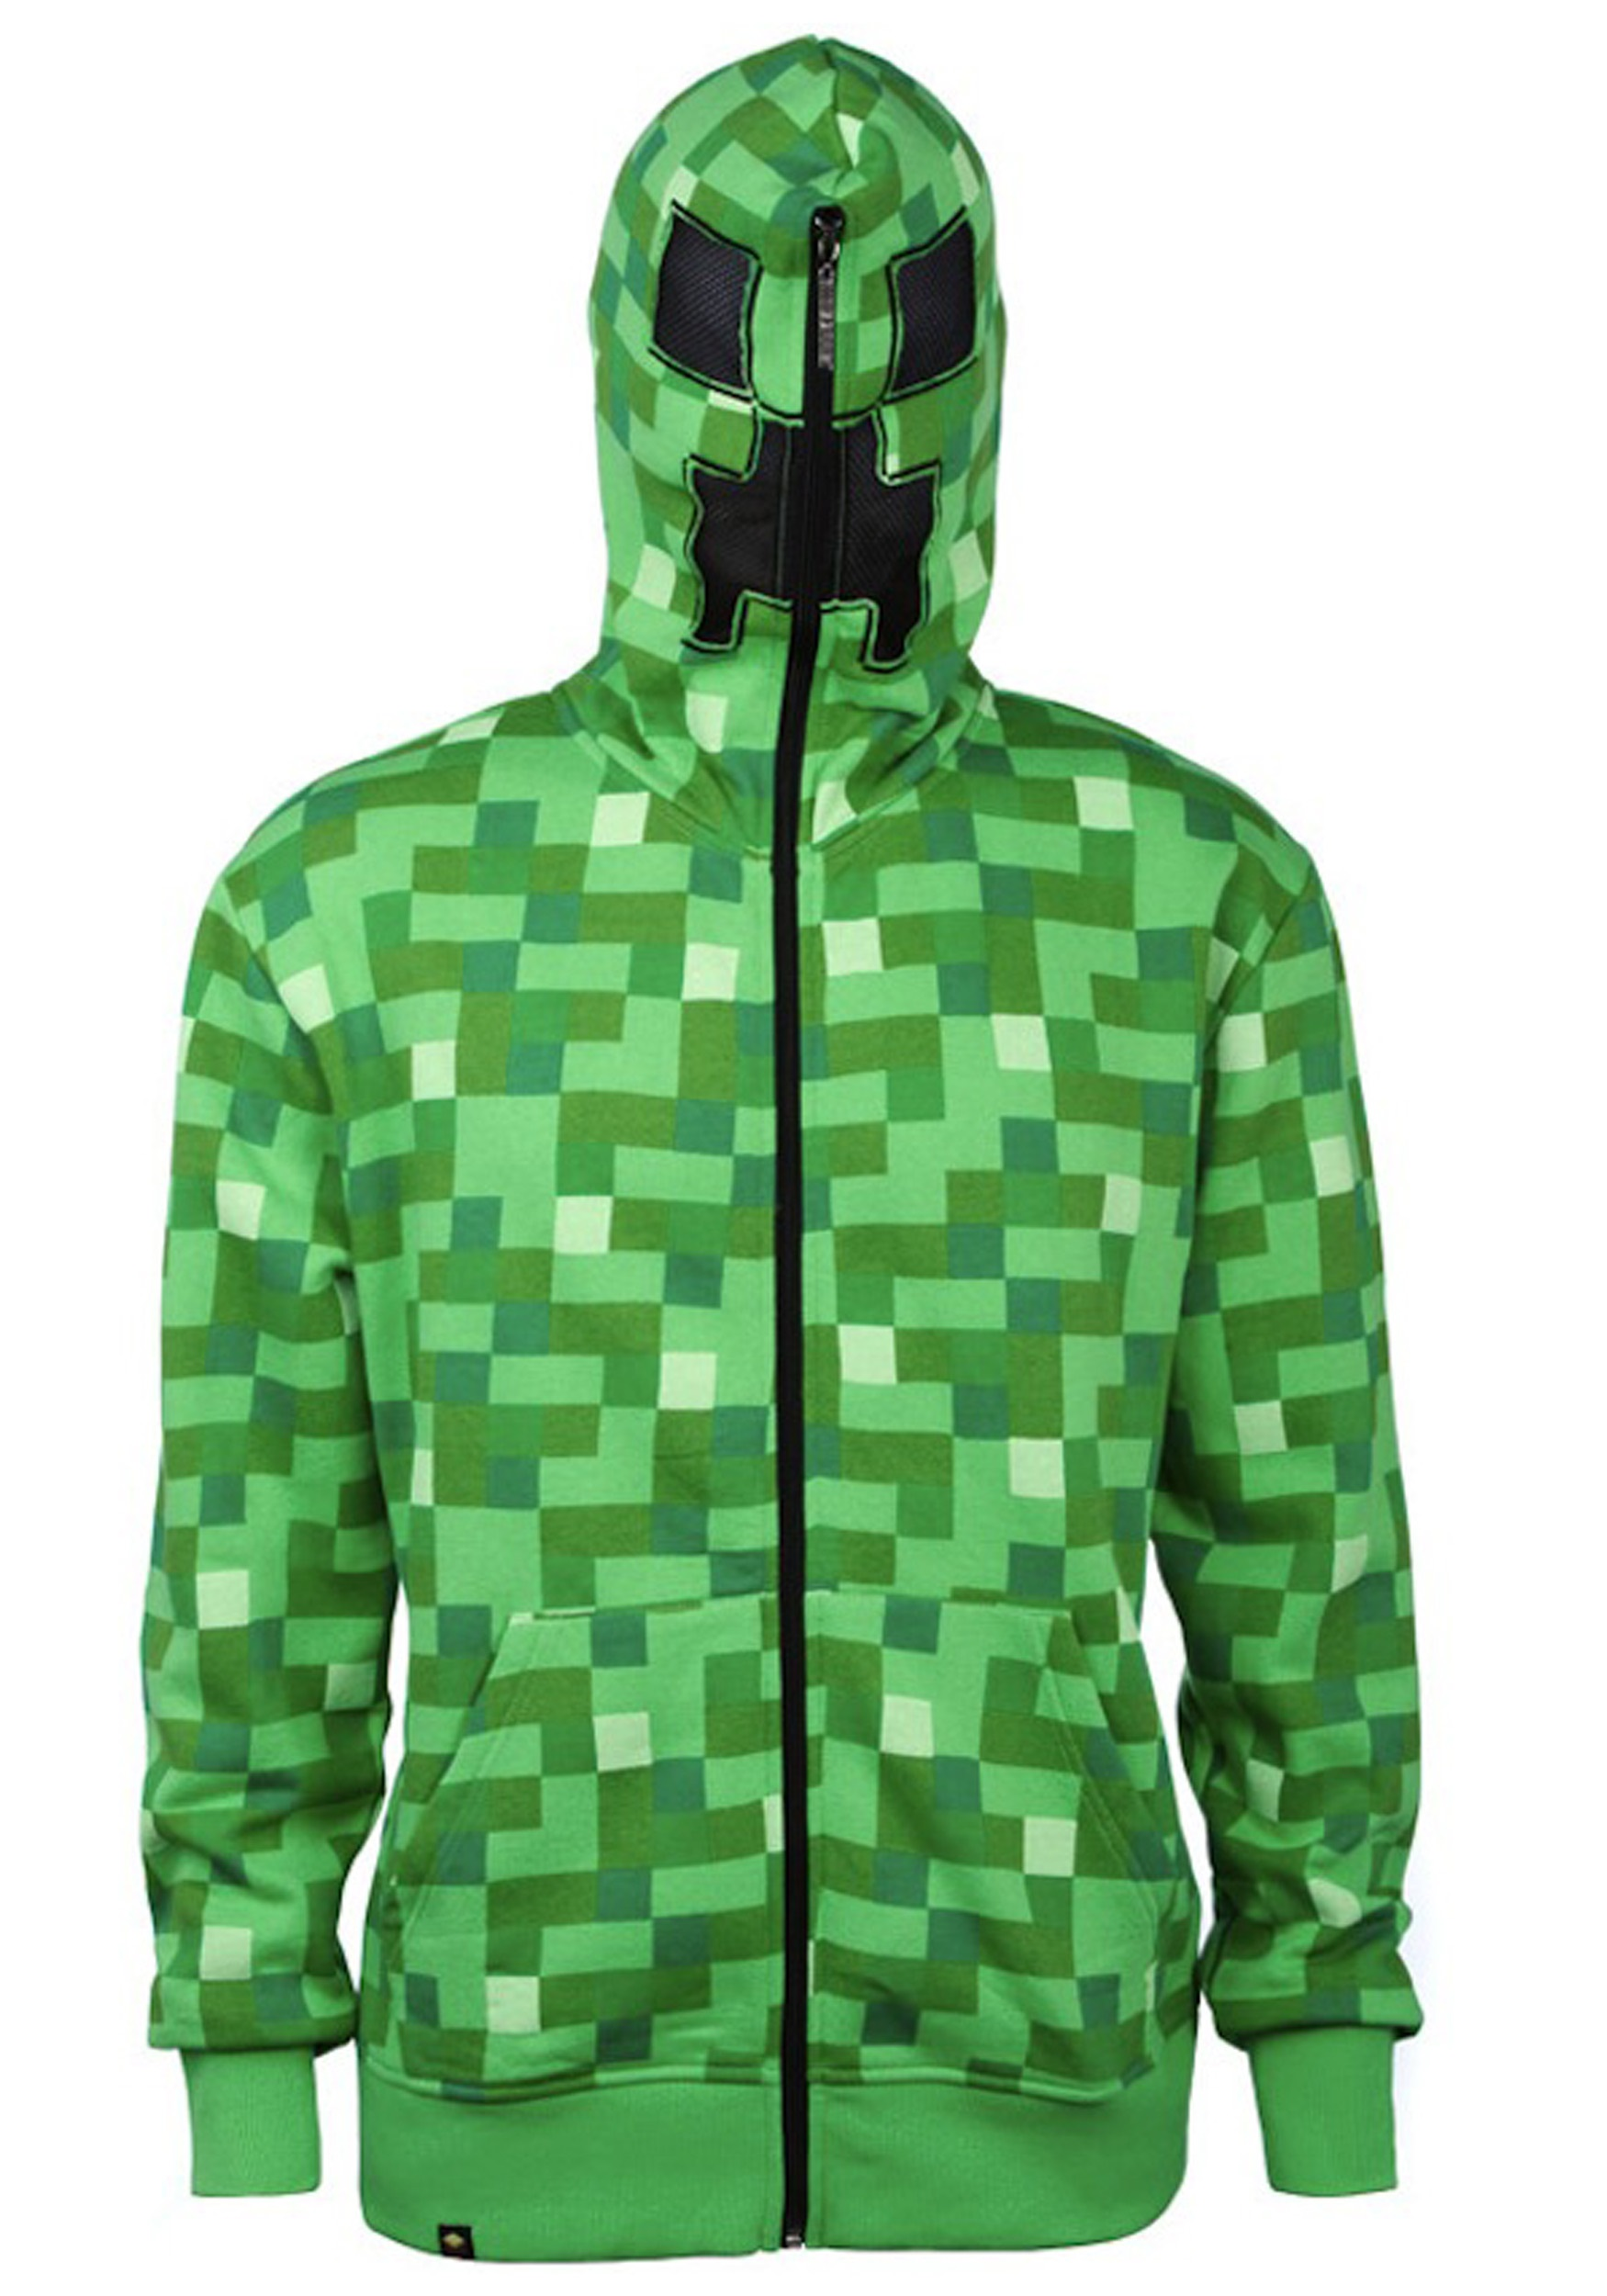 312da050d Kids  Minecraft Creeper Costume Hooded Sweatshirt